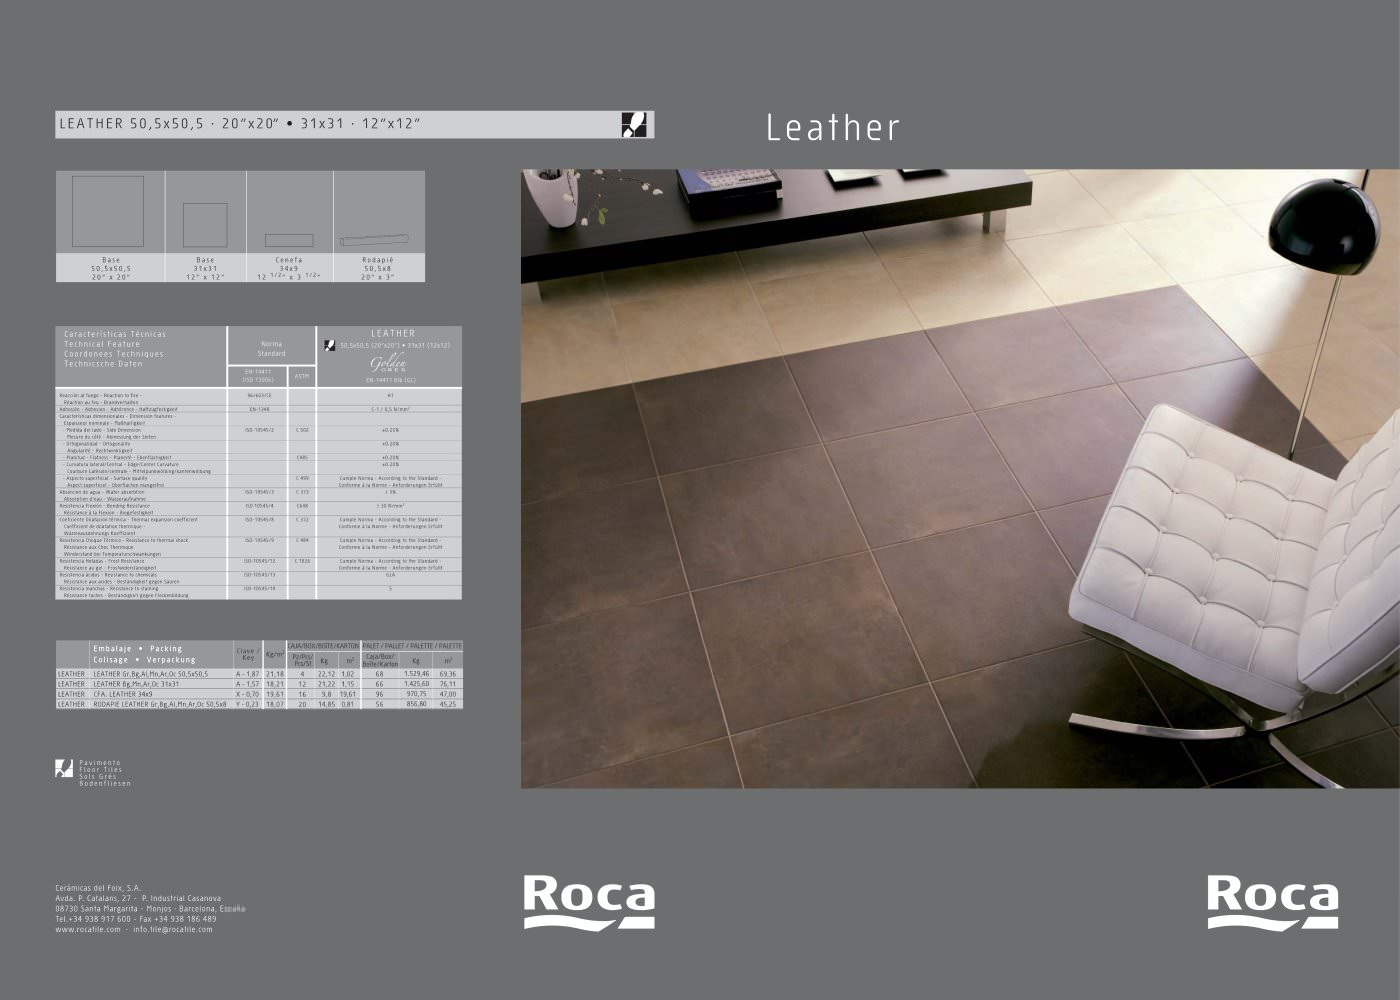 Leather roca tile pdf catalogues documentation brochures leather 1 2 pages dailygadgetfo Images